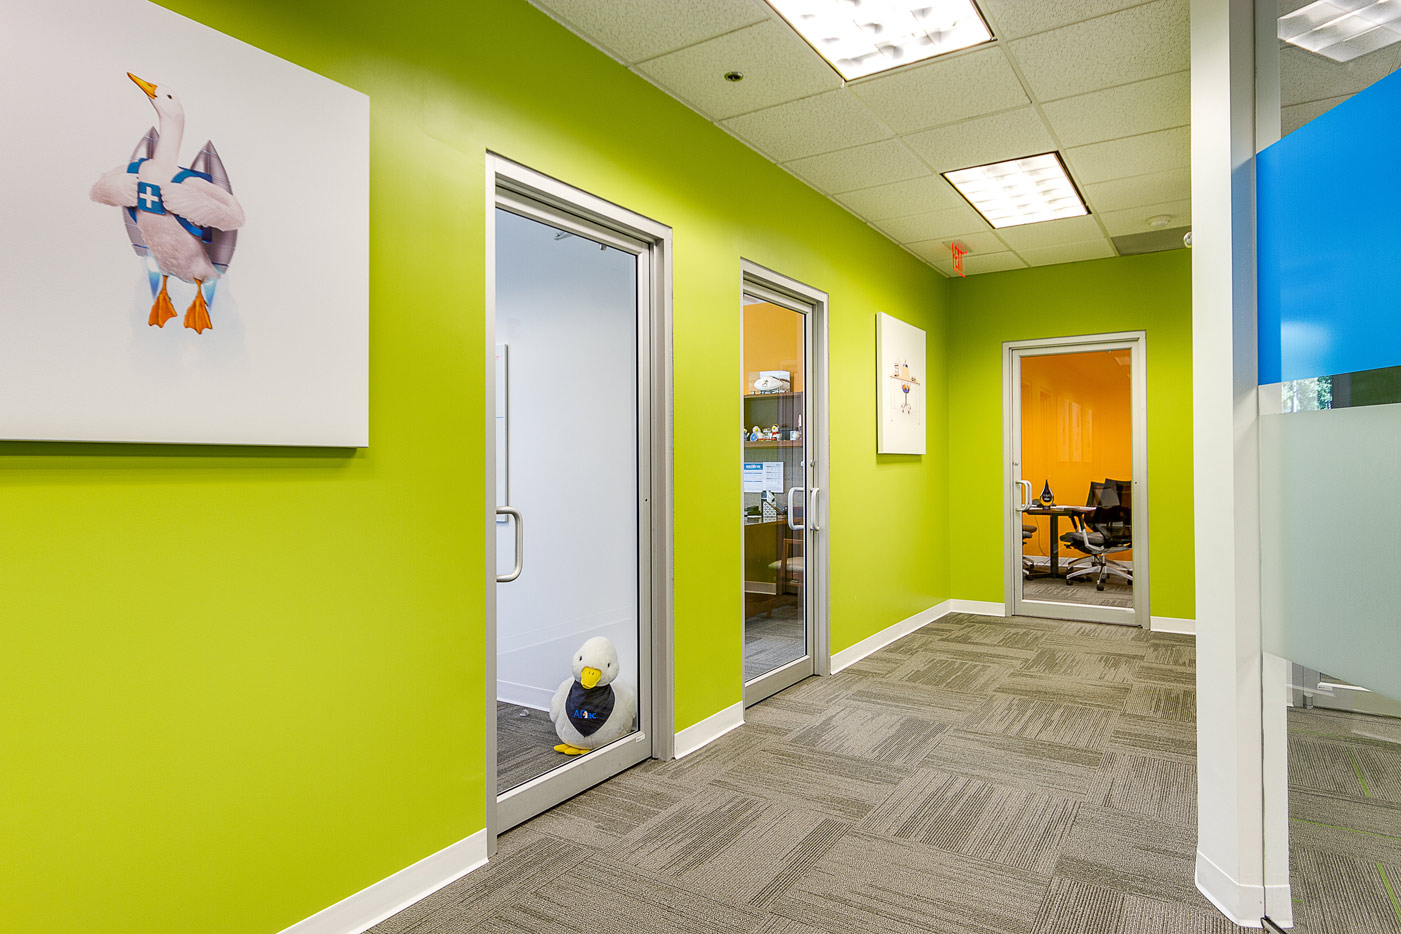 hallway of Aflac office